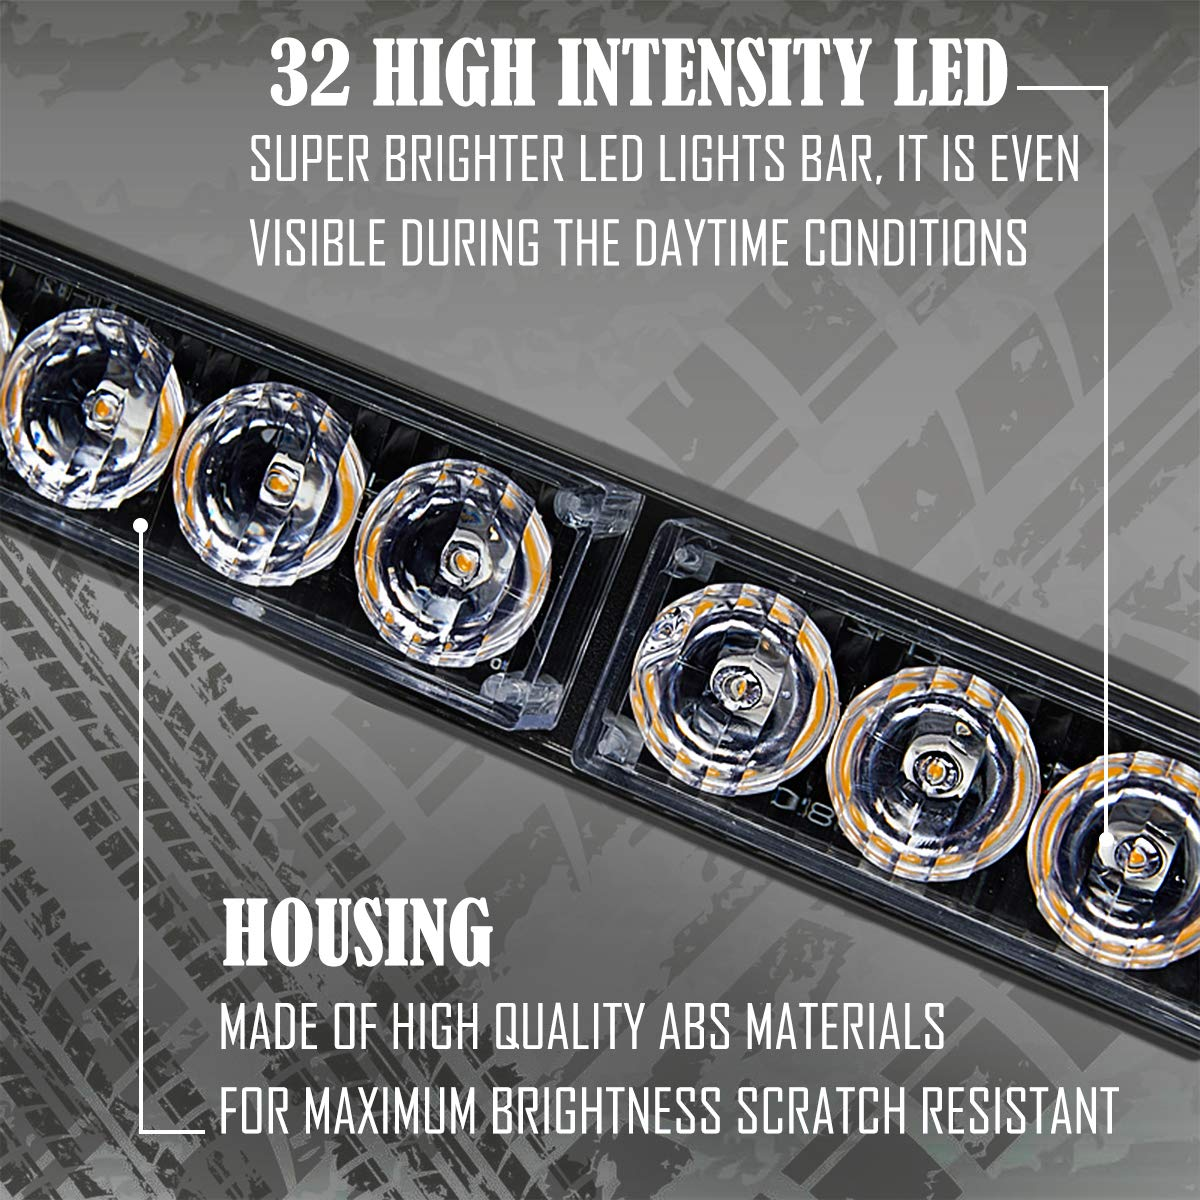 35.5 Inch, Yellow//White Emergency Light Bar 35.5 Inch Traffic Advisor Led Strobe Light Bar Kit Rainproof Warning Caution Turn Signals Directional Car Vehicles Pickup Trucks Tow Roof Rear Head